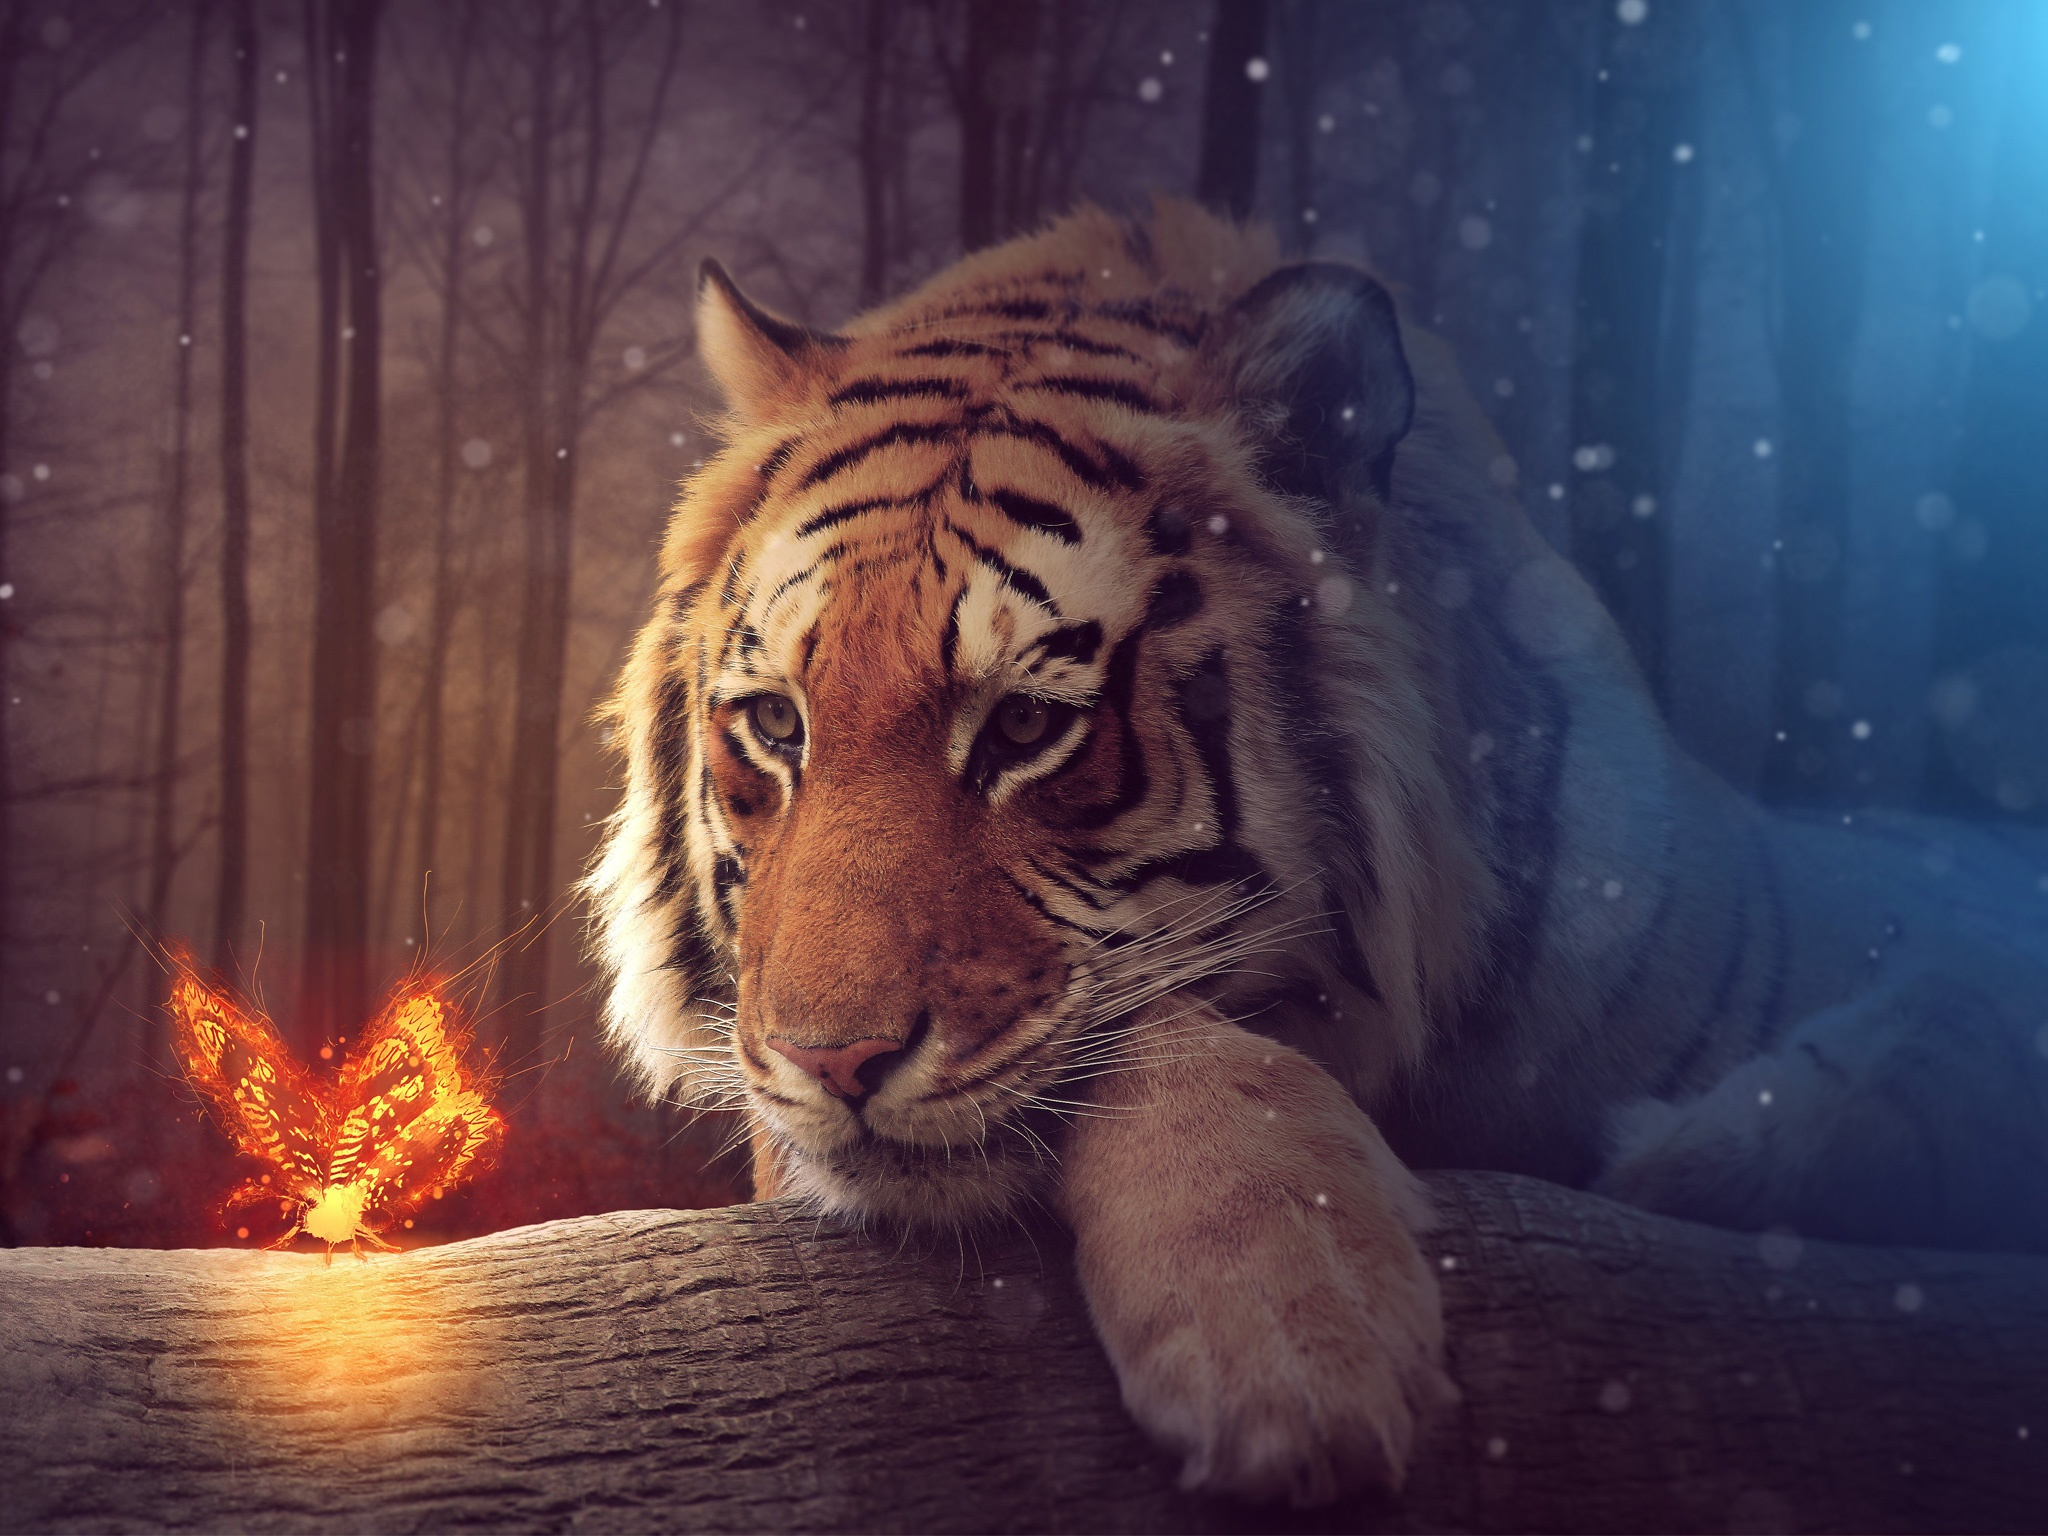 big tiger wallpapers in jpg format for free download